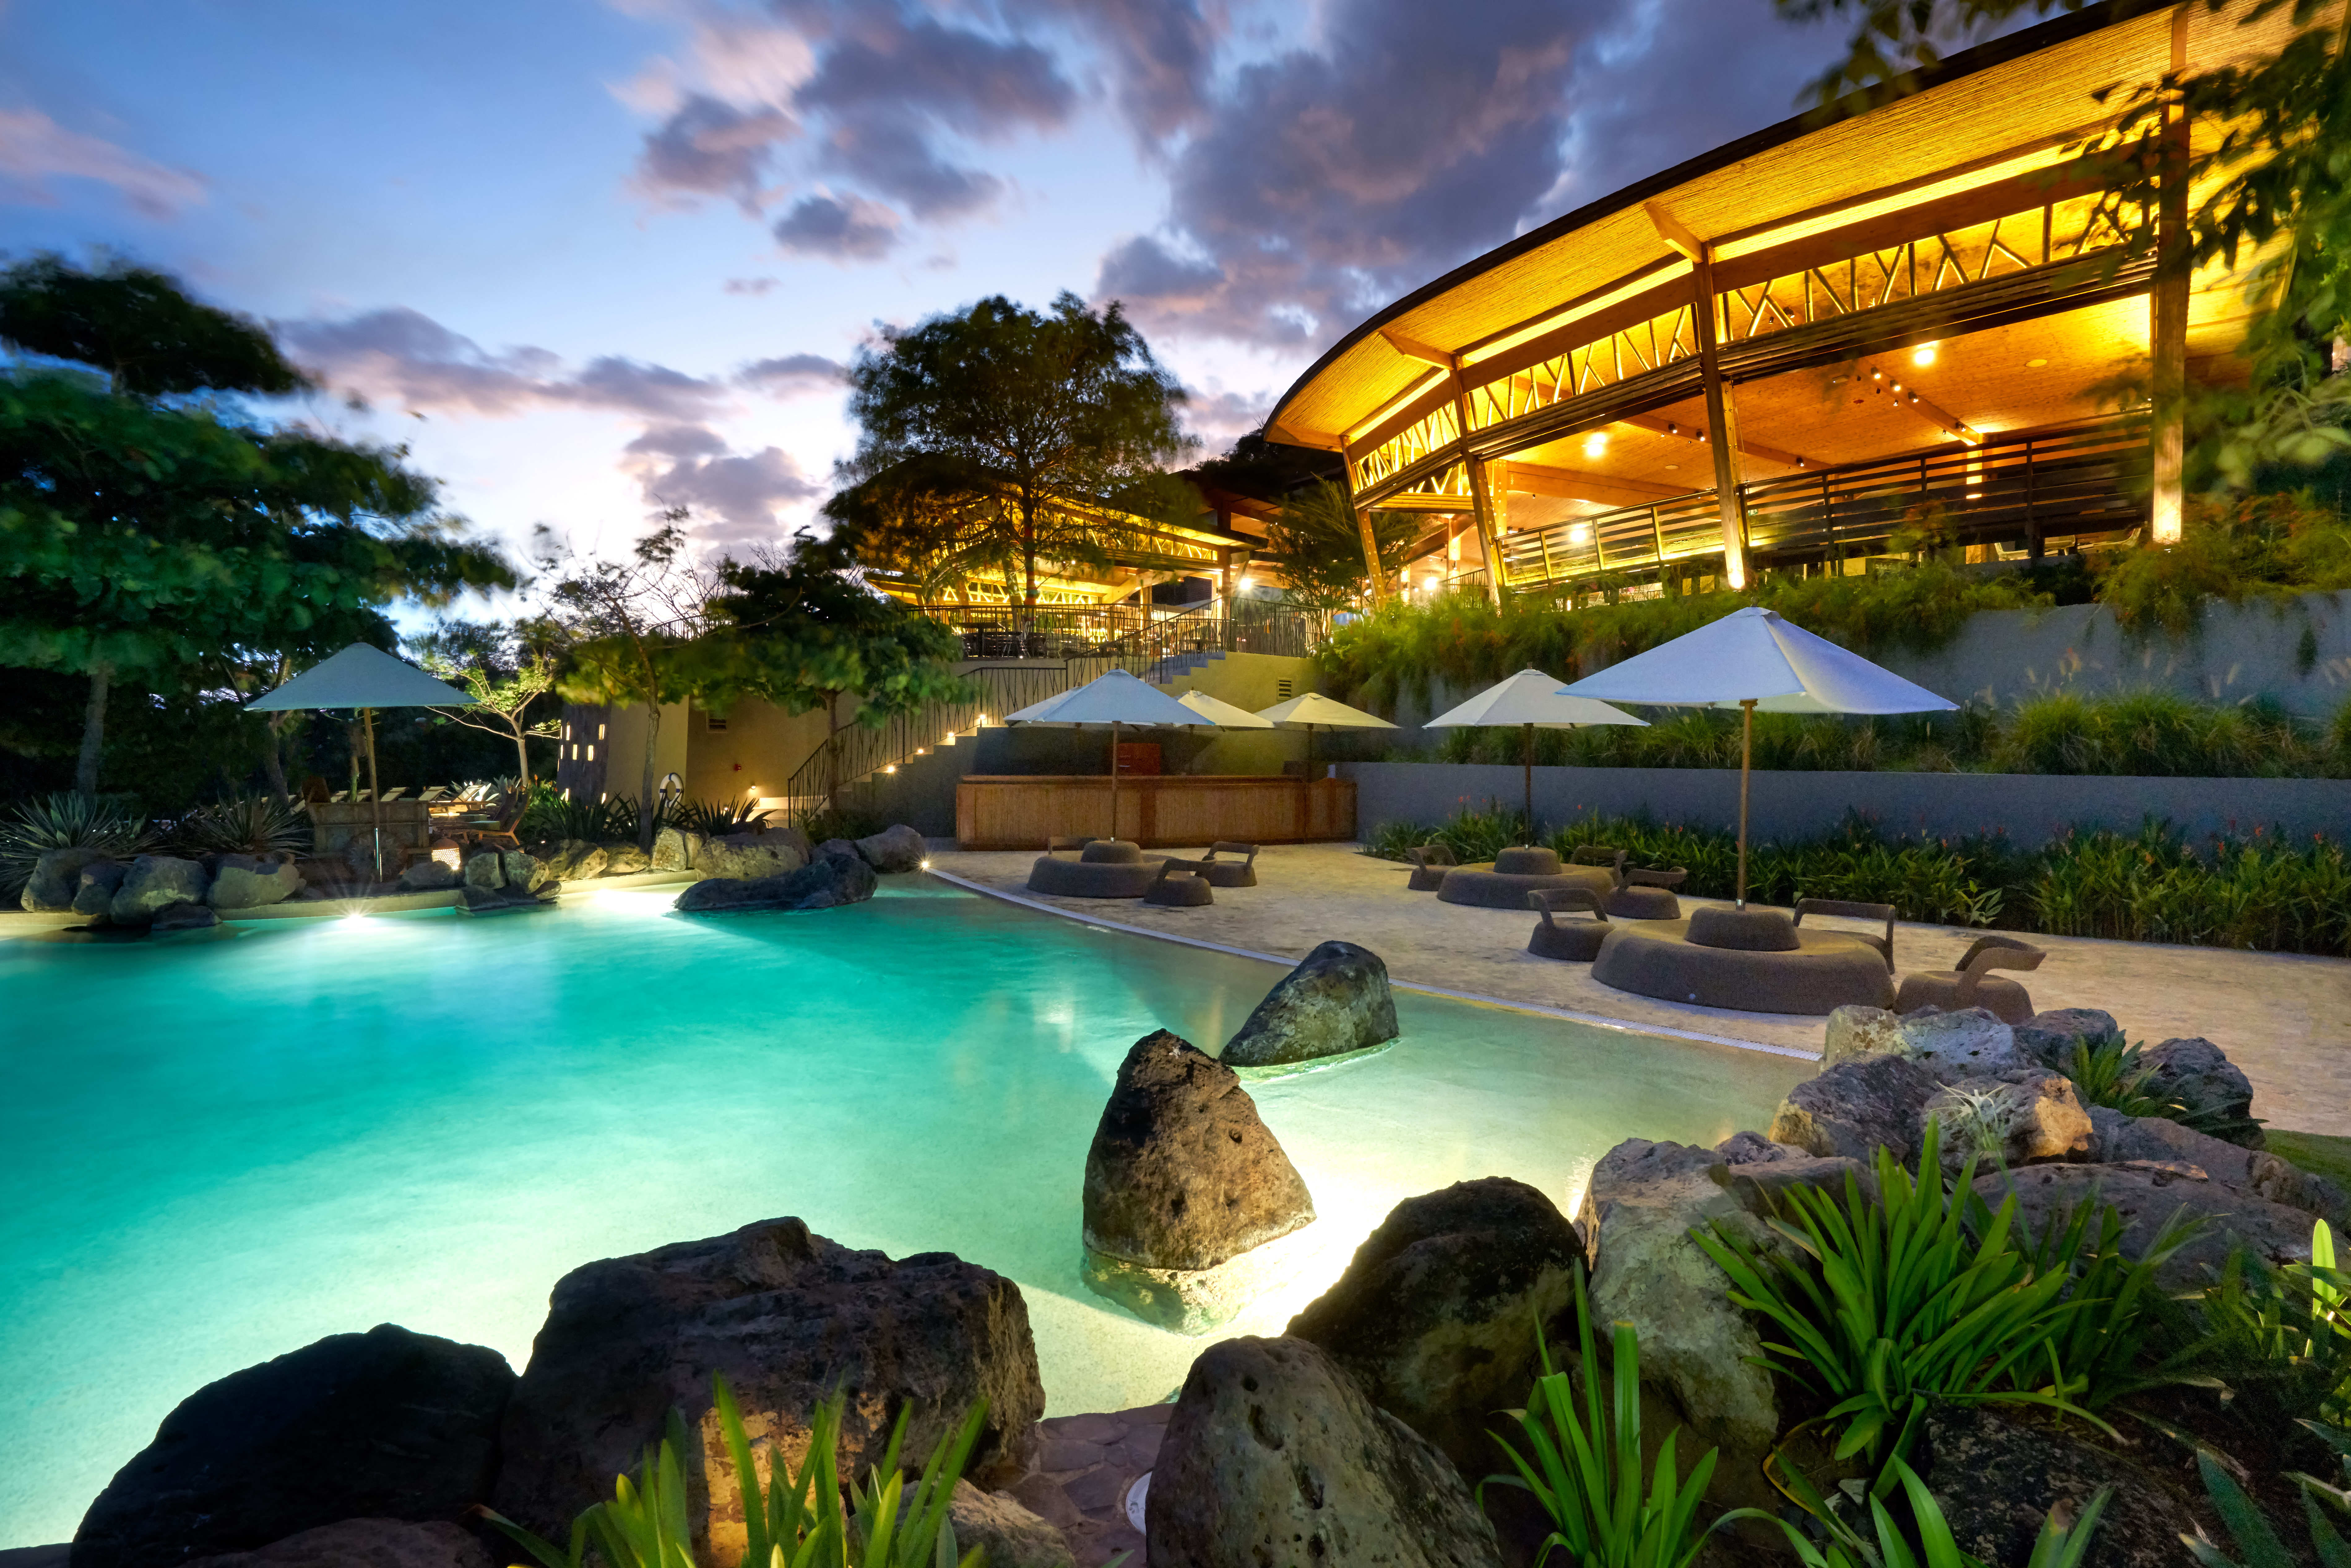 Costa Rica Vacations >> Gencom Led Ownership Acquires Andaz Costa Rica Resort At